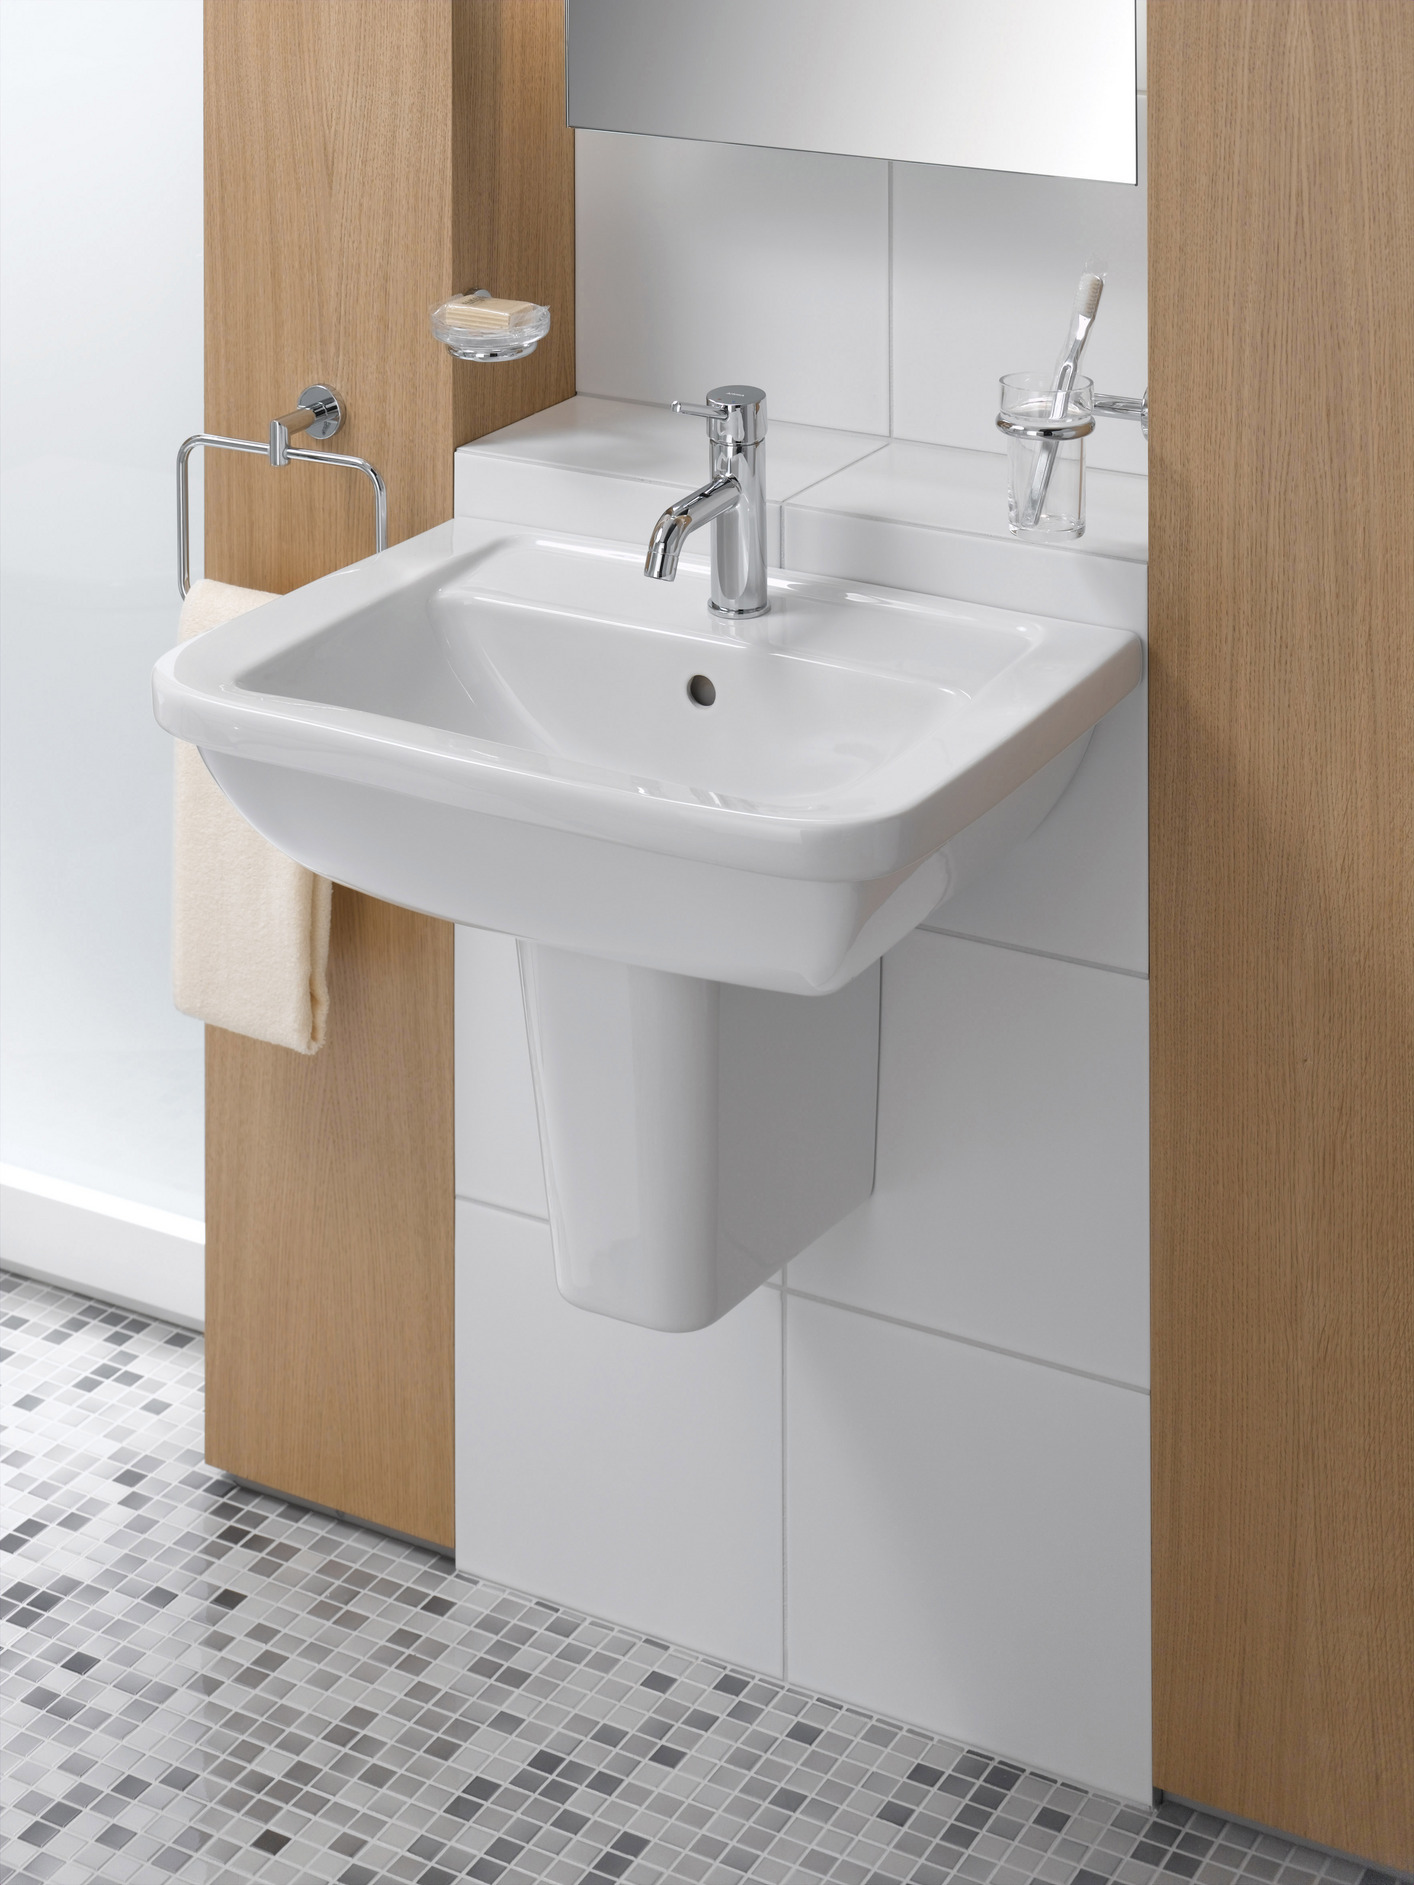 Vitra bathroom suppliers Lincolnshire - Walkers at Home